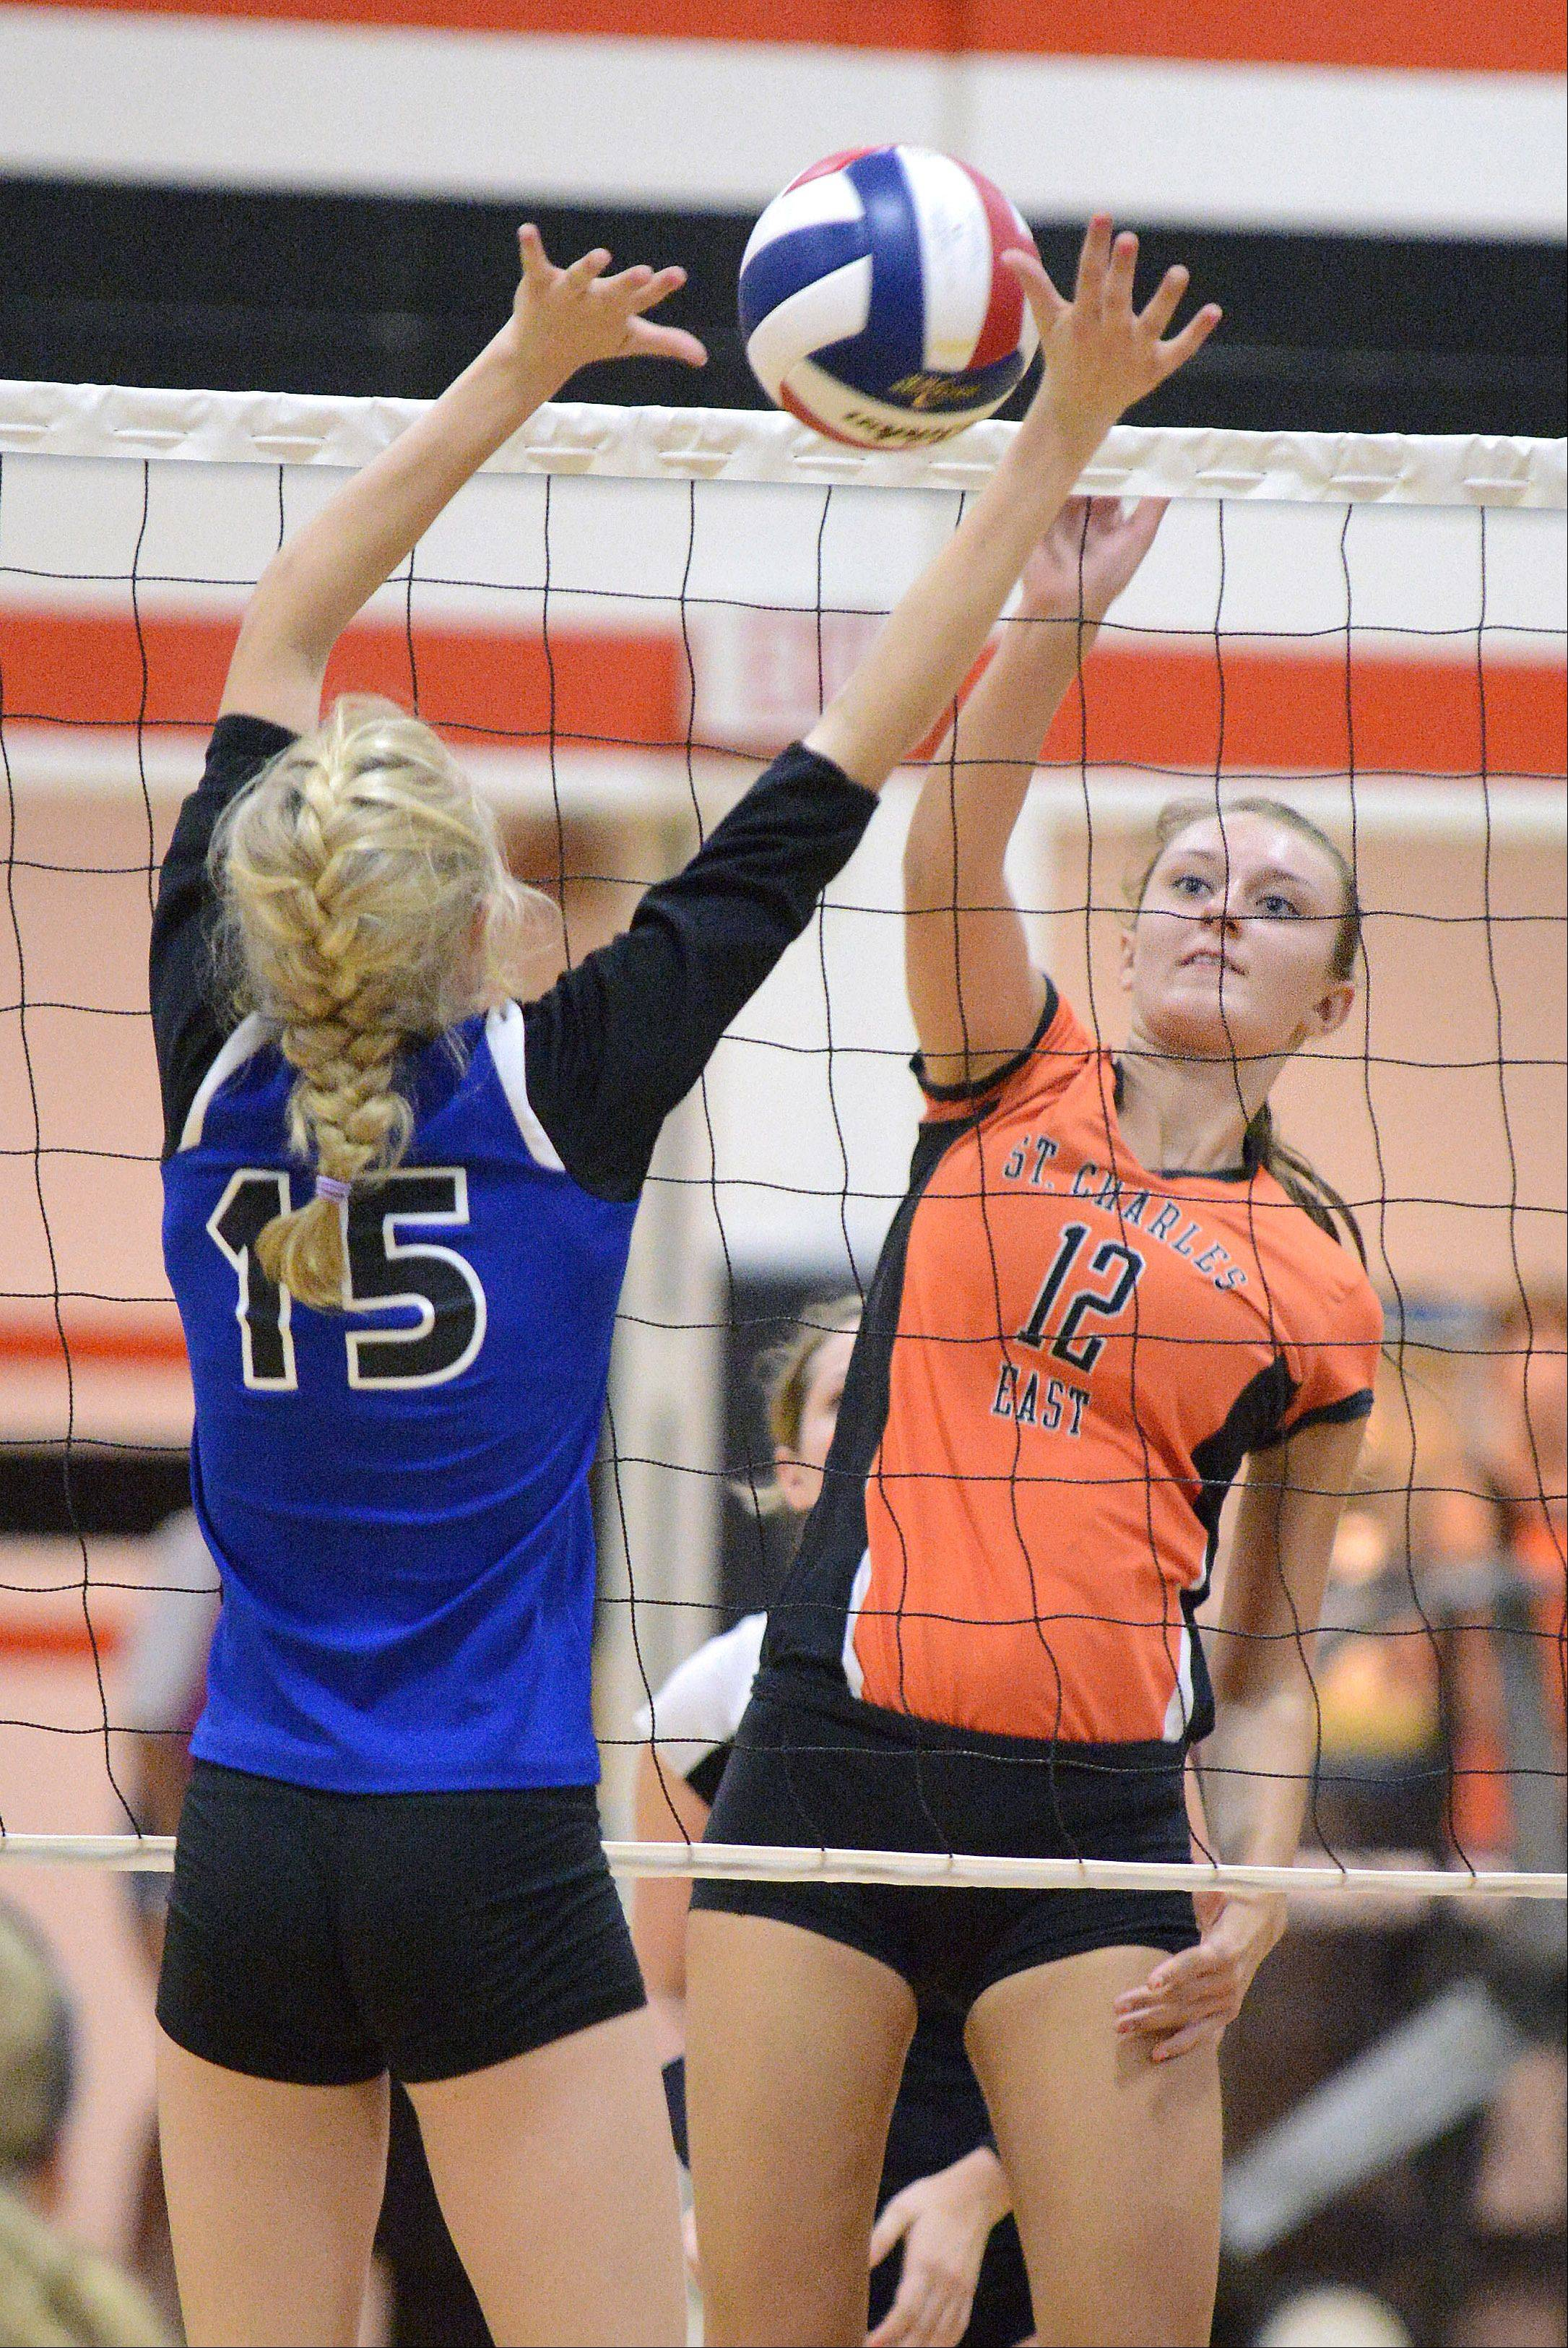 St. Charles East's Ashley Bullock spikes the ball over to Rosary's Erin Burke in the second game on Wednesday, September 4.